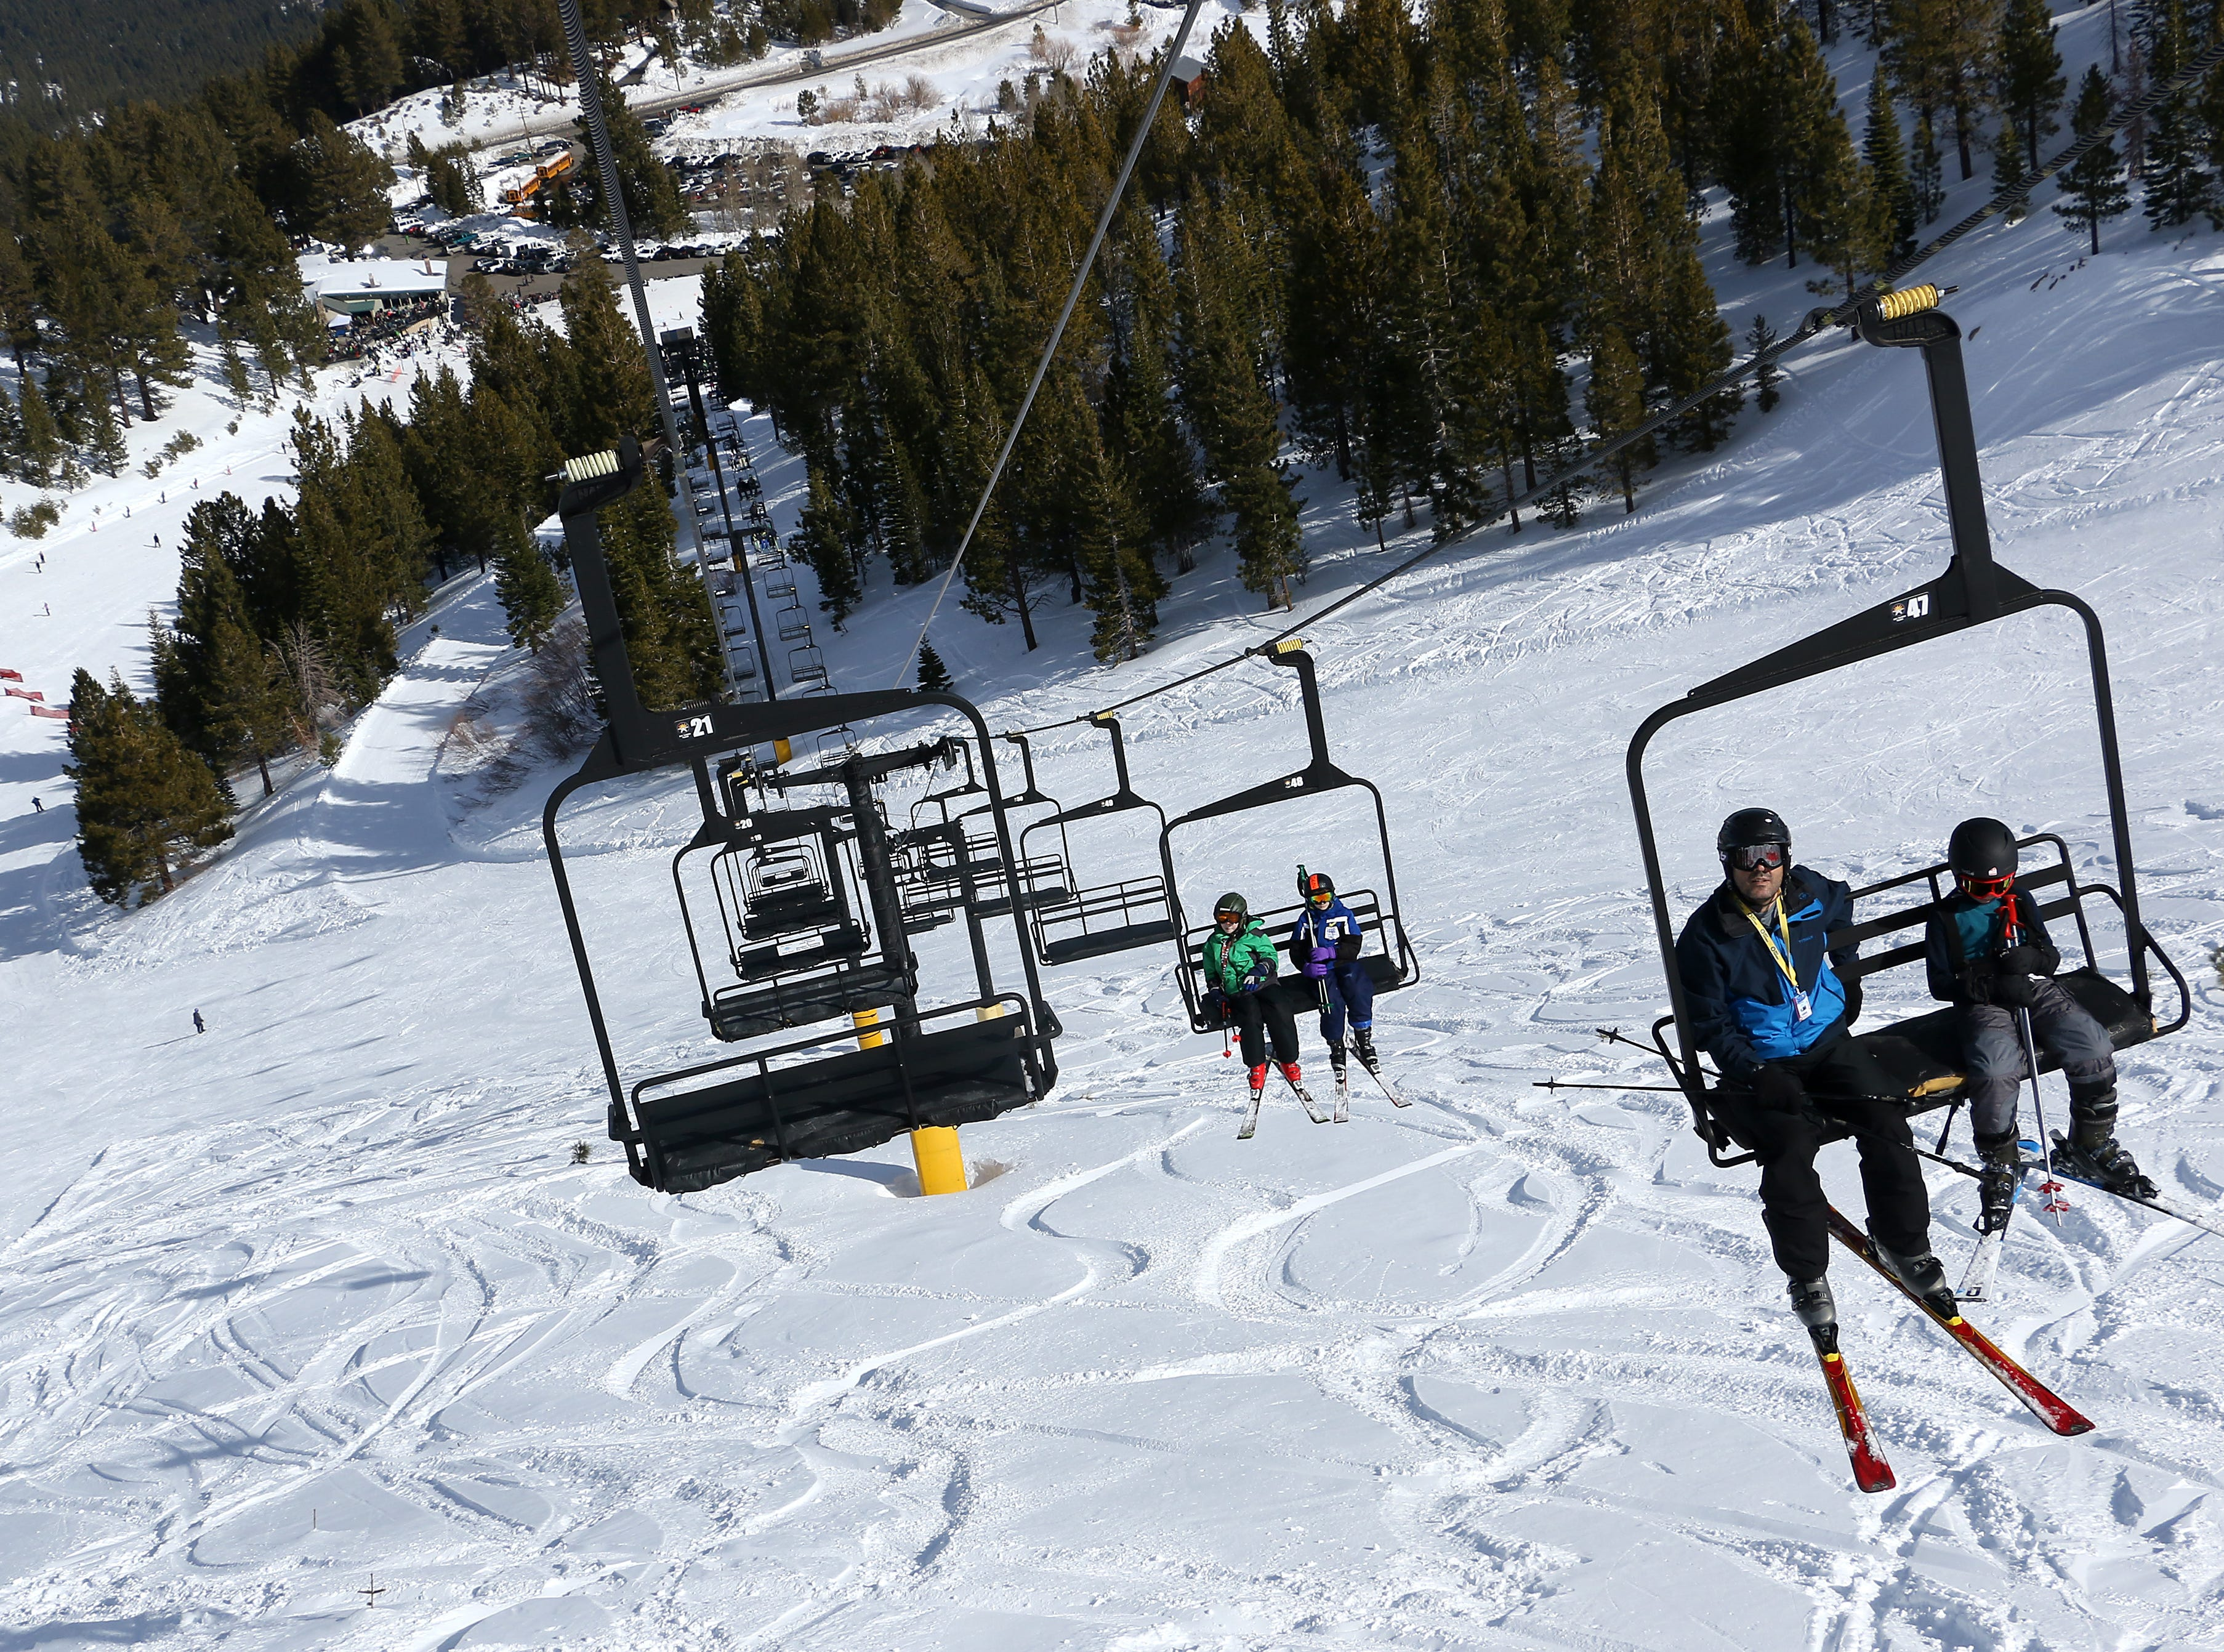 Skiers ride the lift up to the top during opening day for the Sky Tavern Jr. Ski Program near Reno on Jan. 26, 2019.